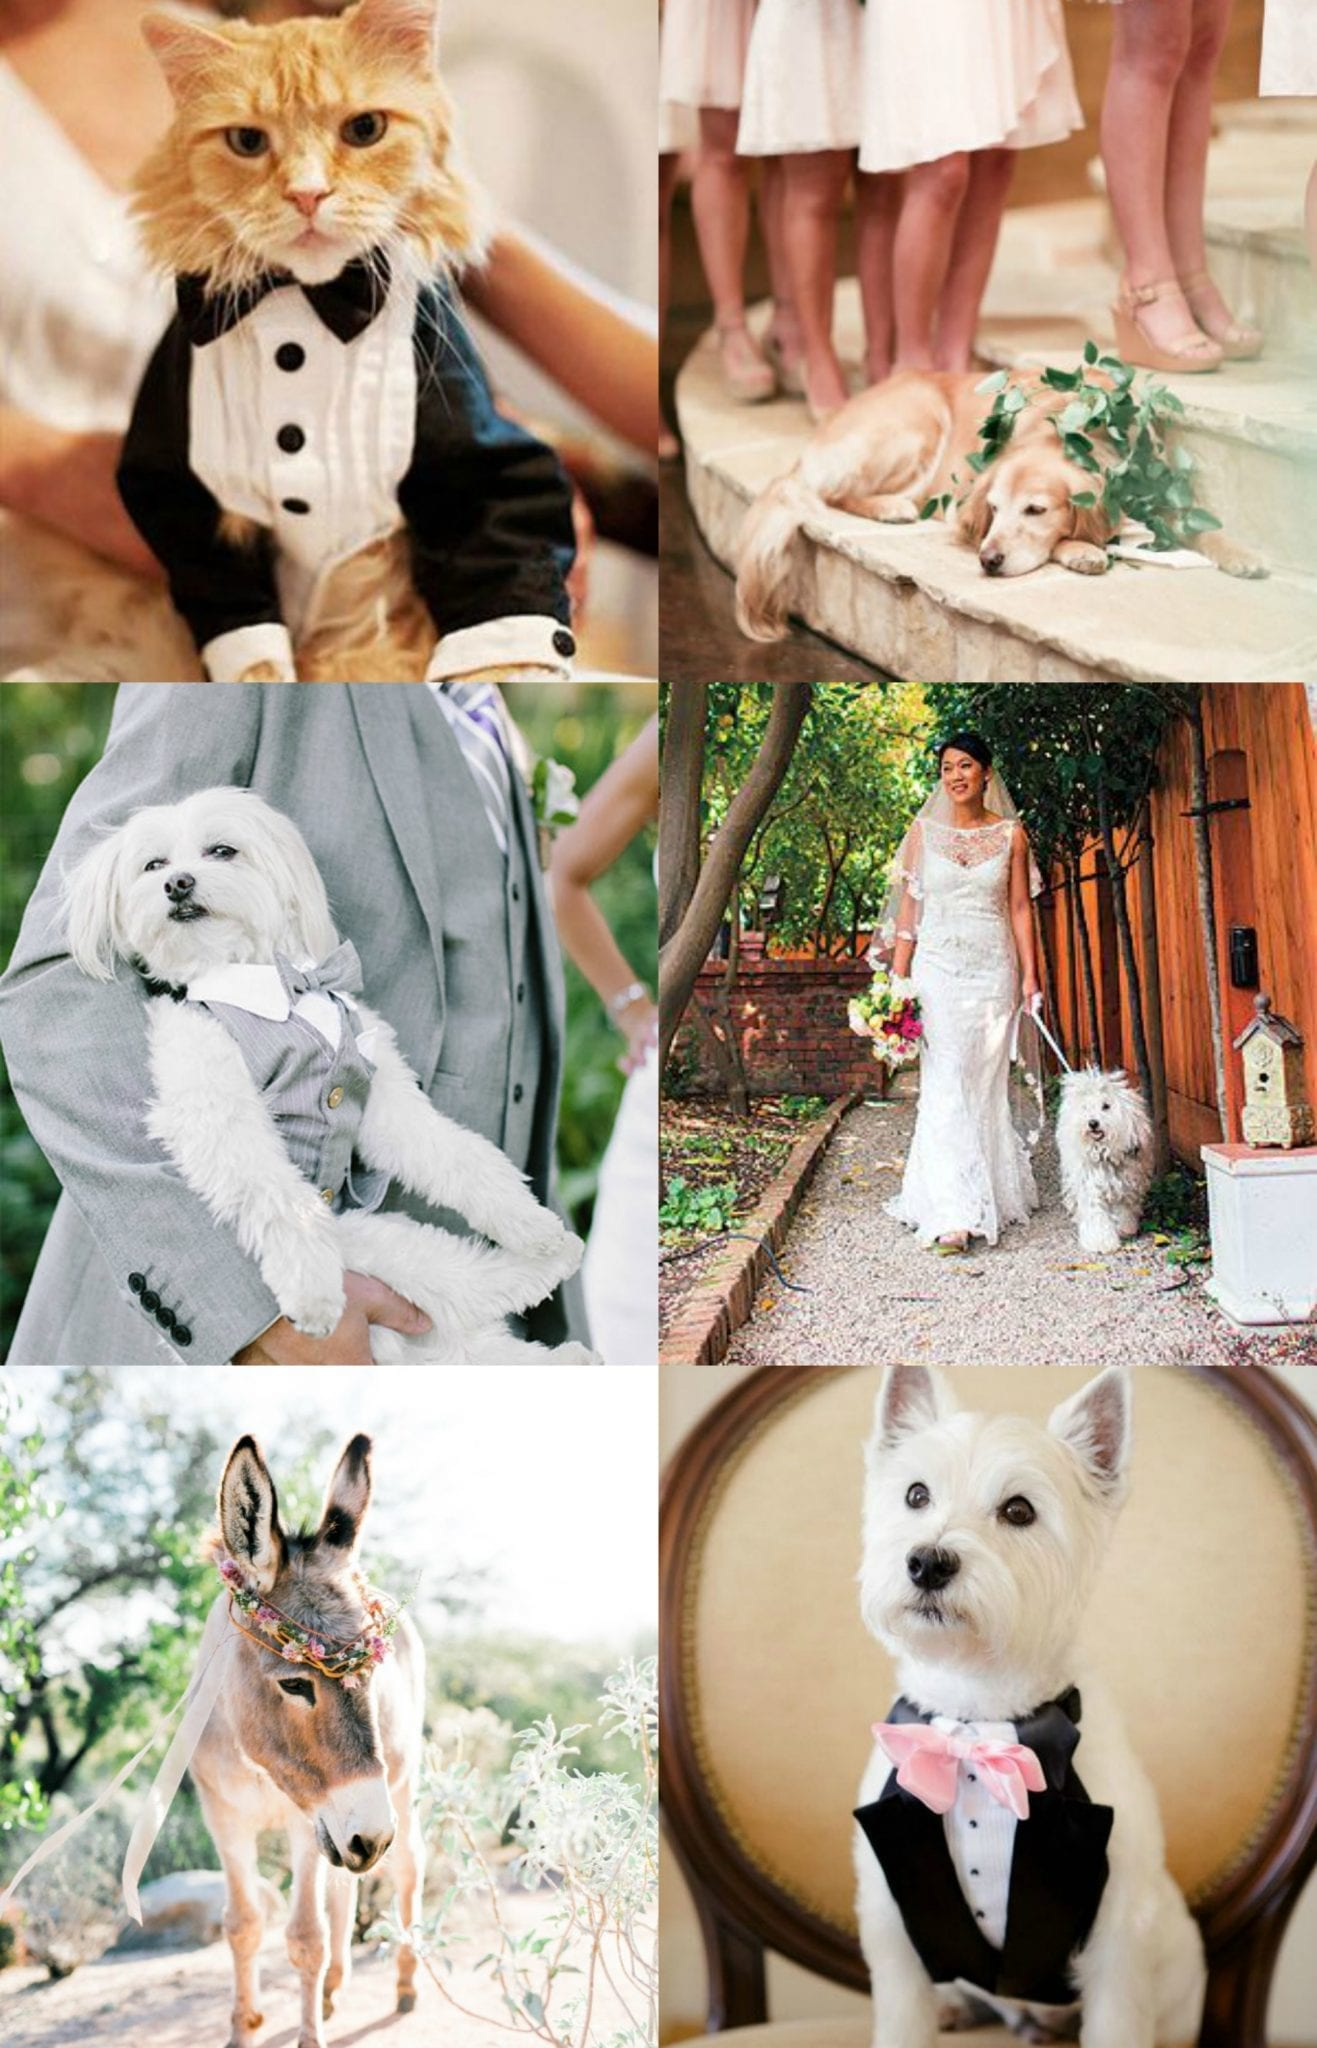 Pets at weddings